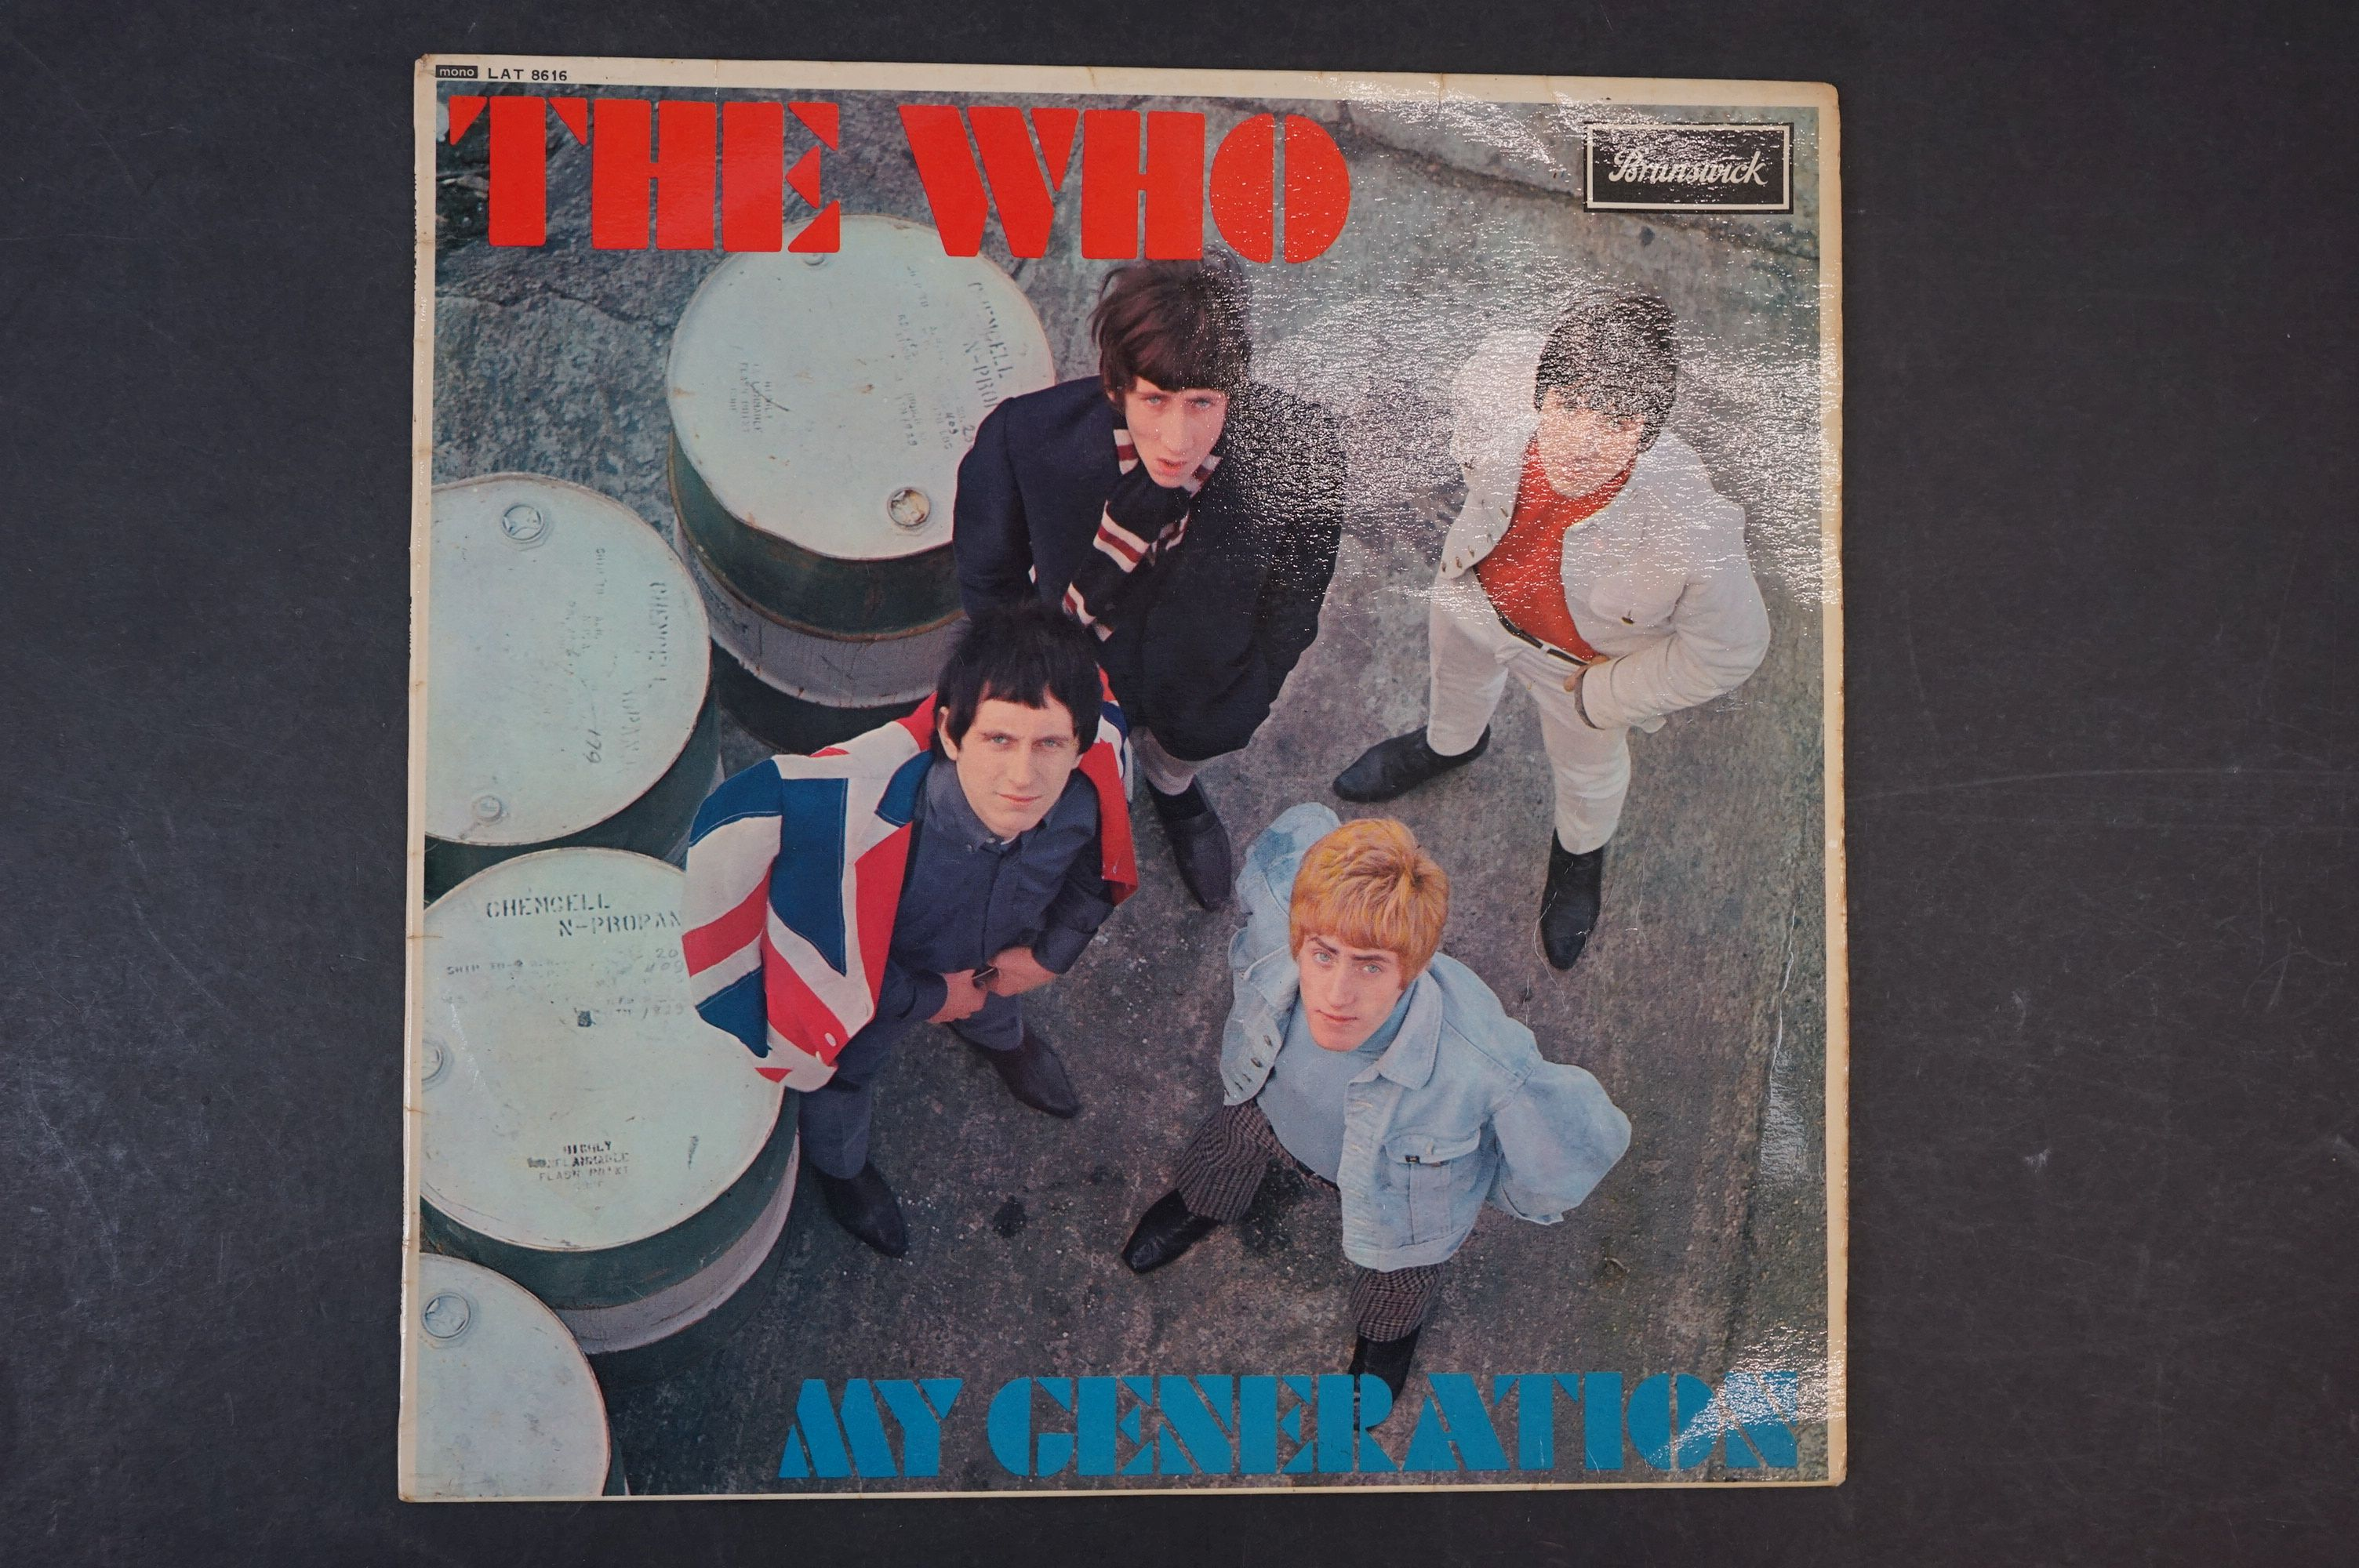 Vinyl - The Who My Generation LP on Brunswick LAT8616 mono with laminated front sleeve, silver & - Image 7 of 8